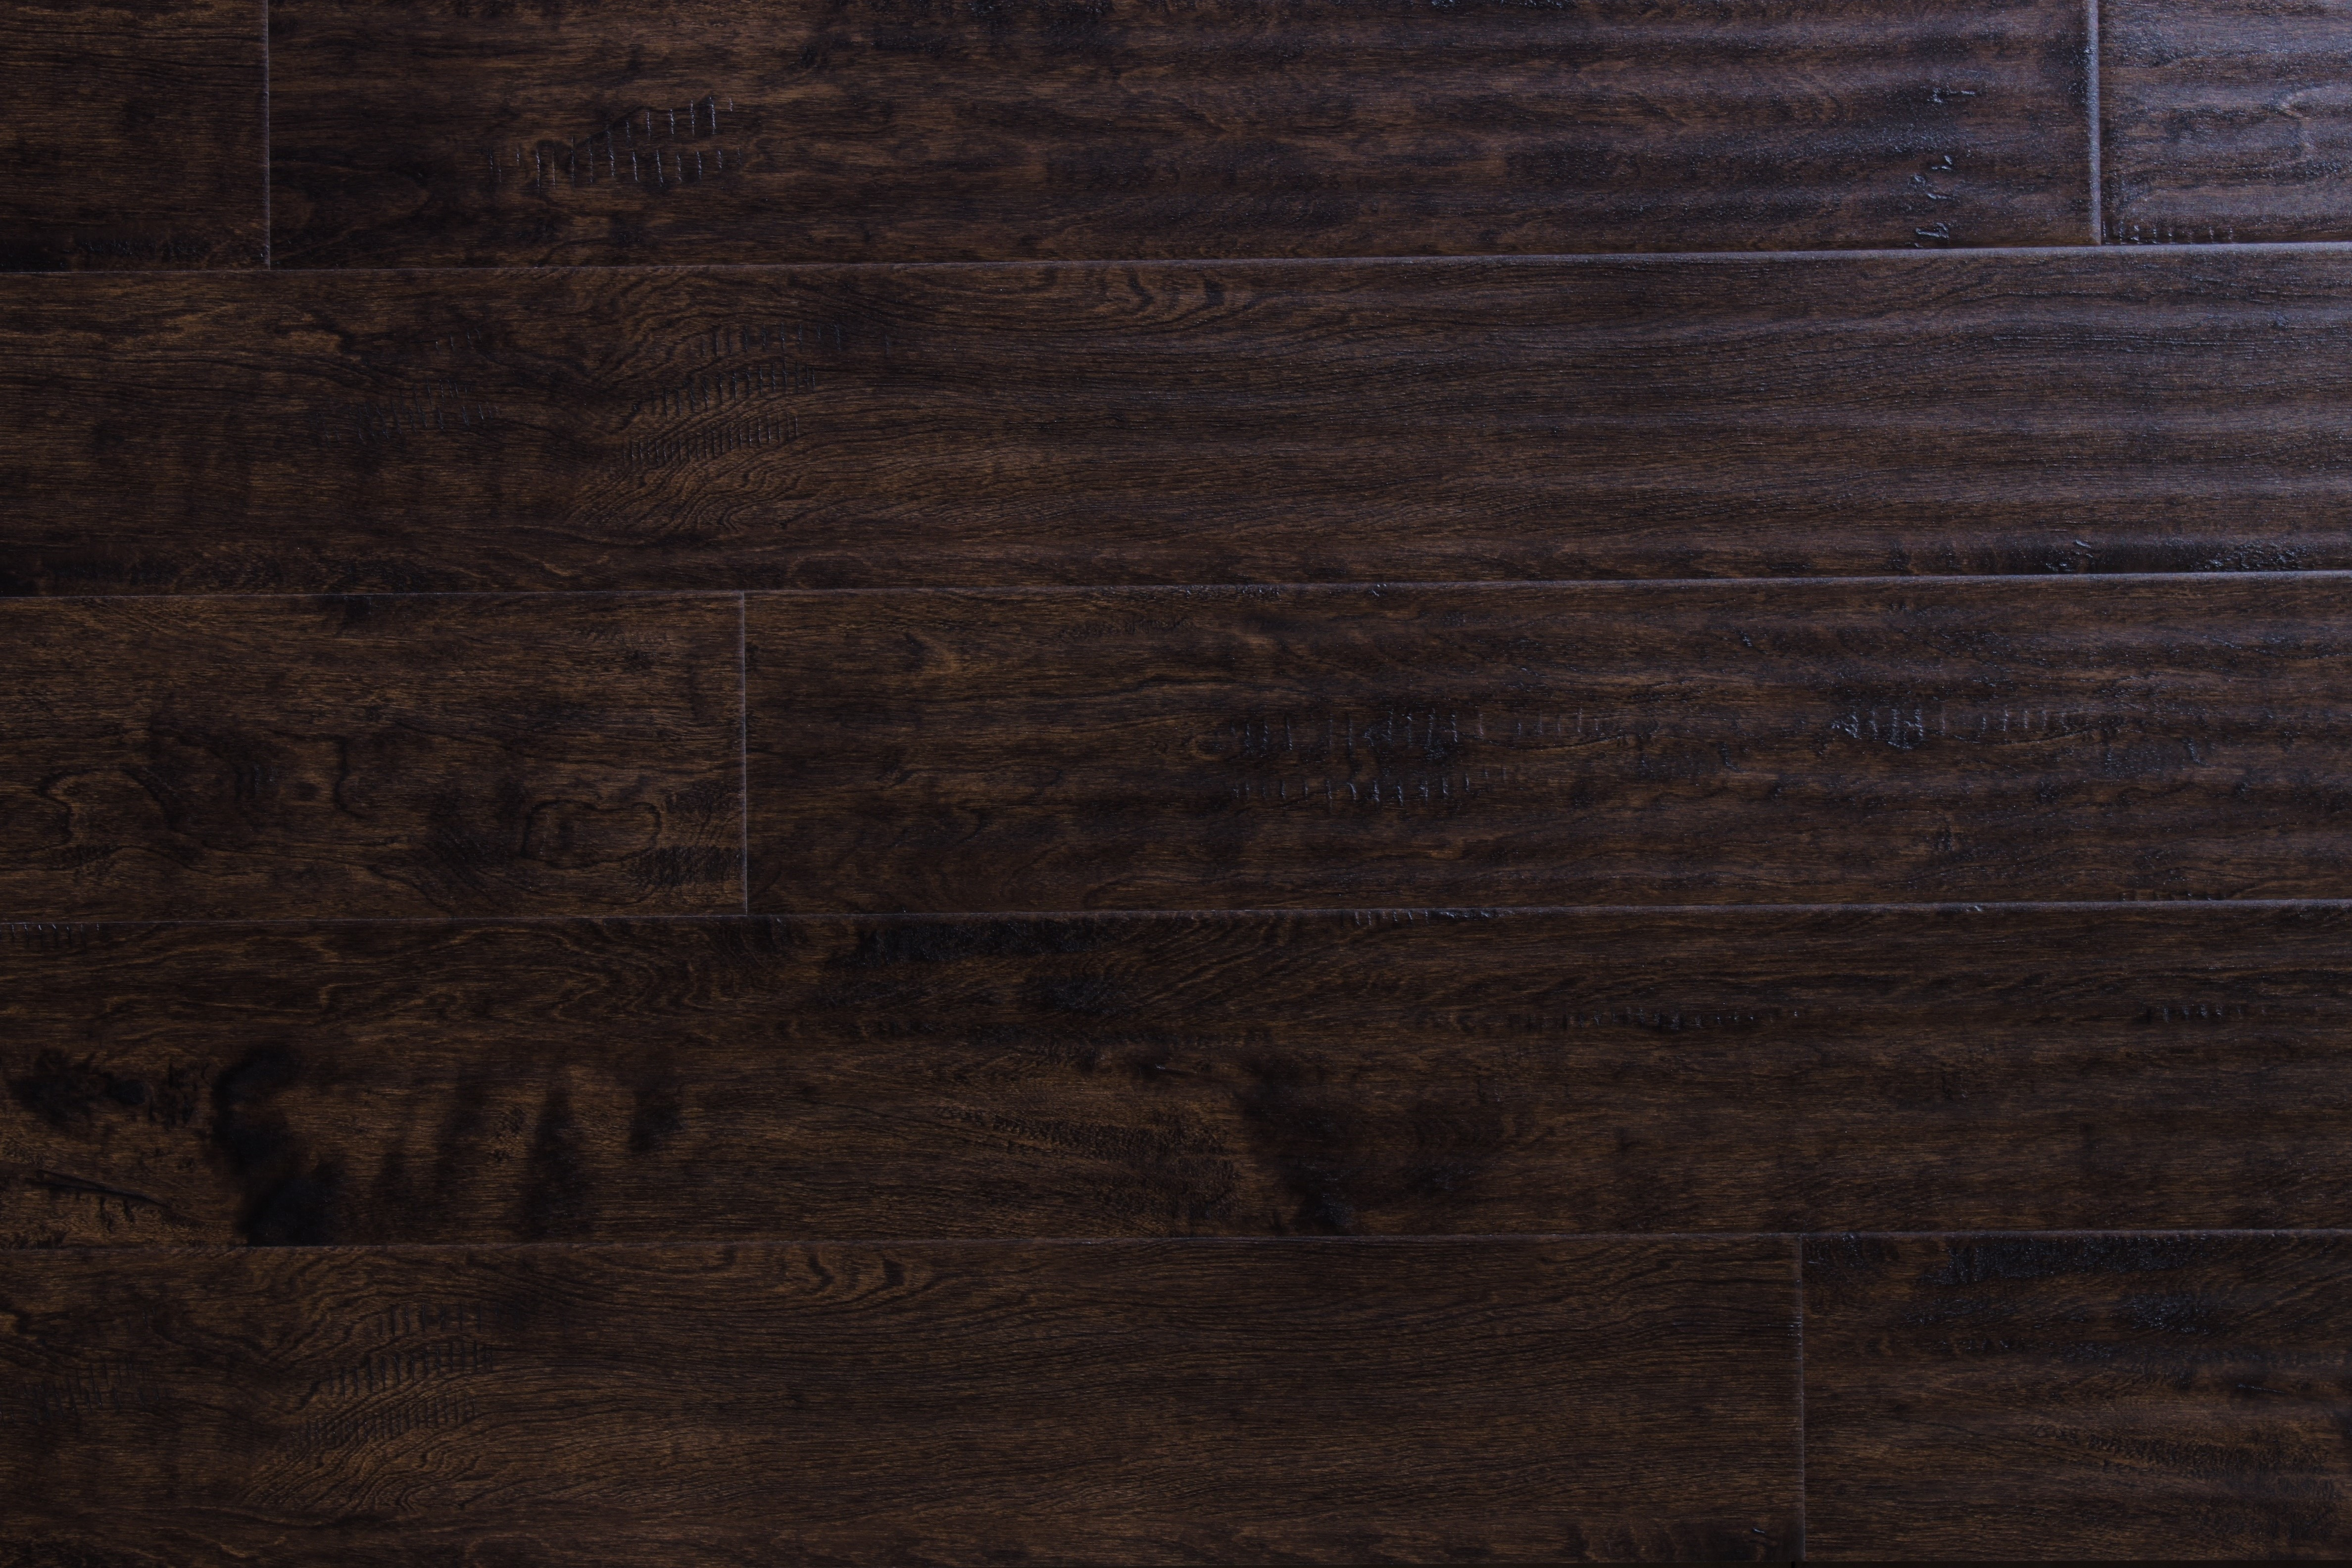 lyptus hardwood flooring reviews of wood flooring free samples available at builddirecta with tailor multi gb 5874277bb8d3c